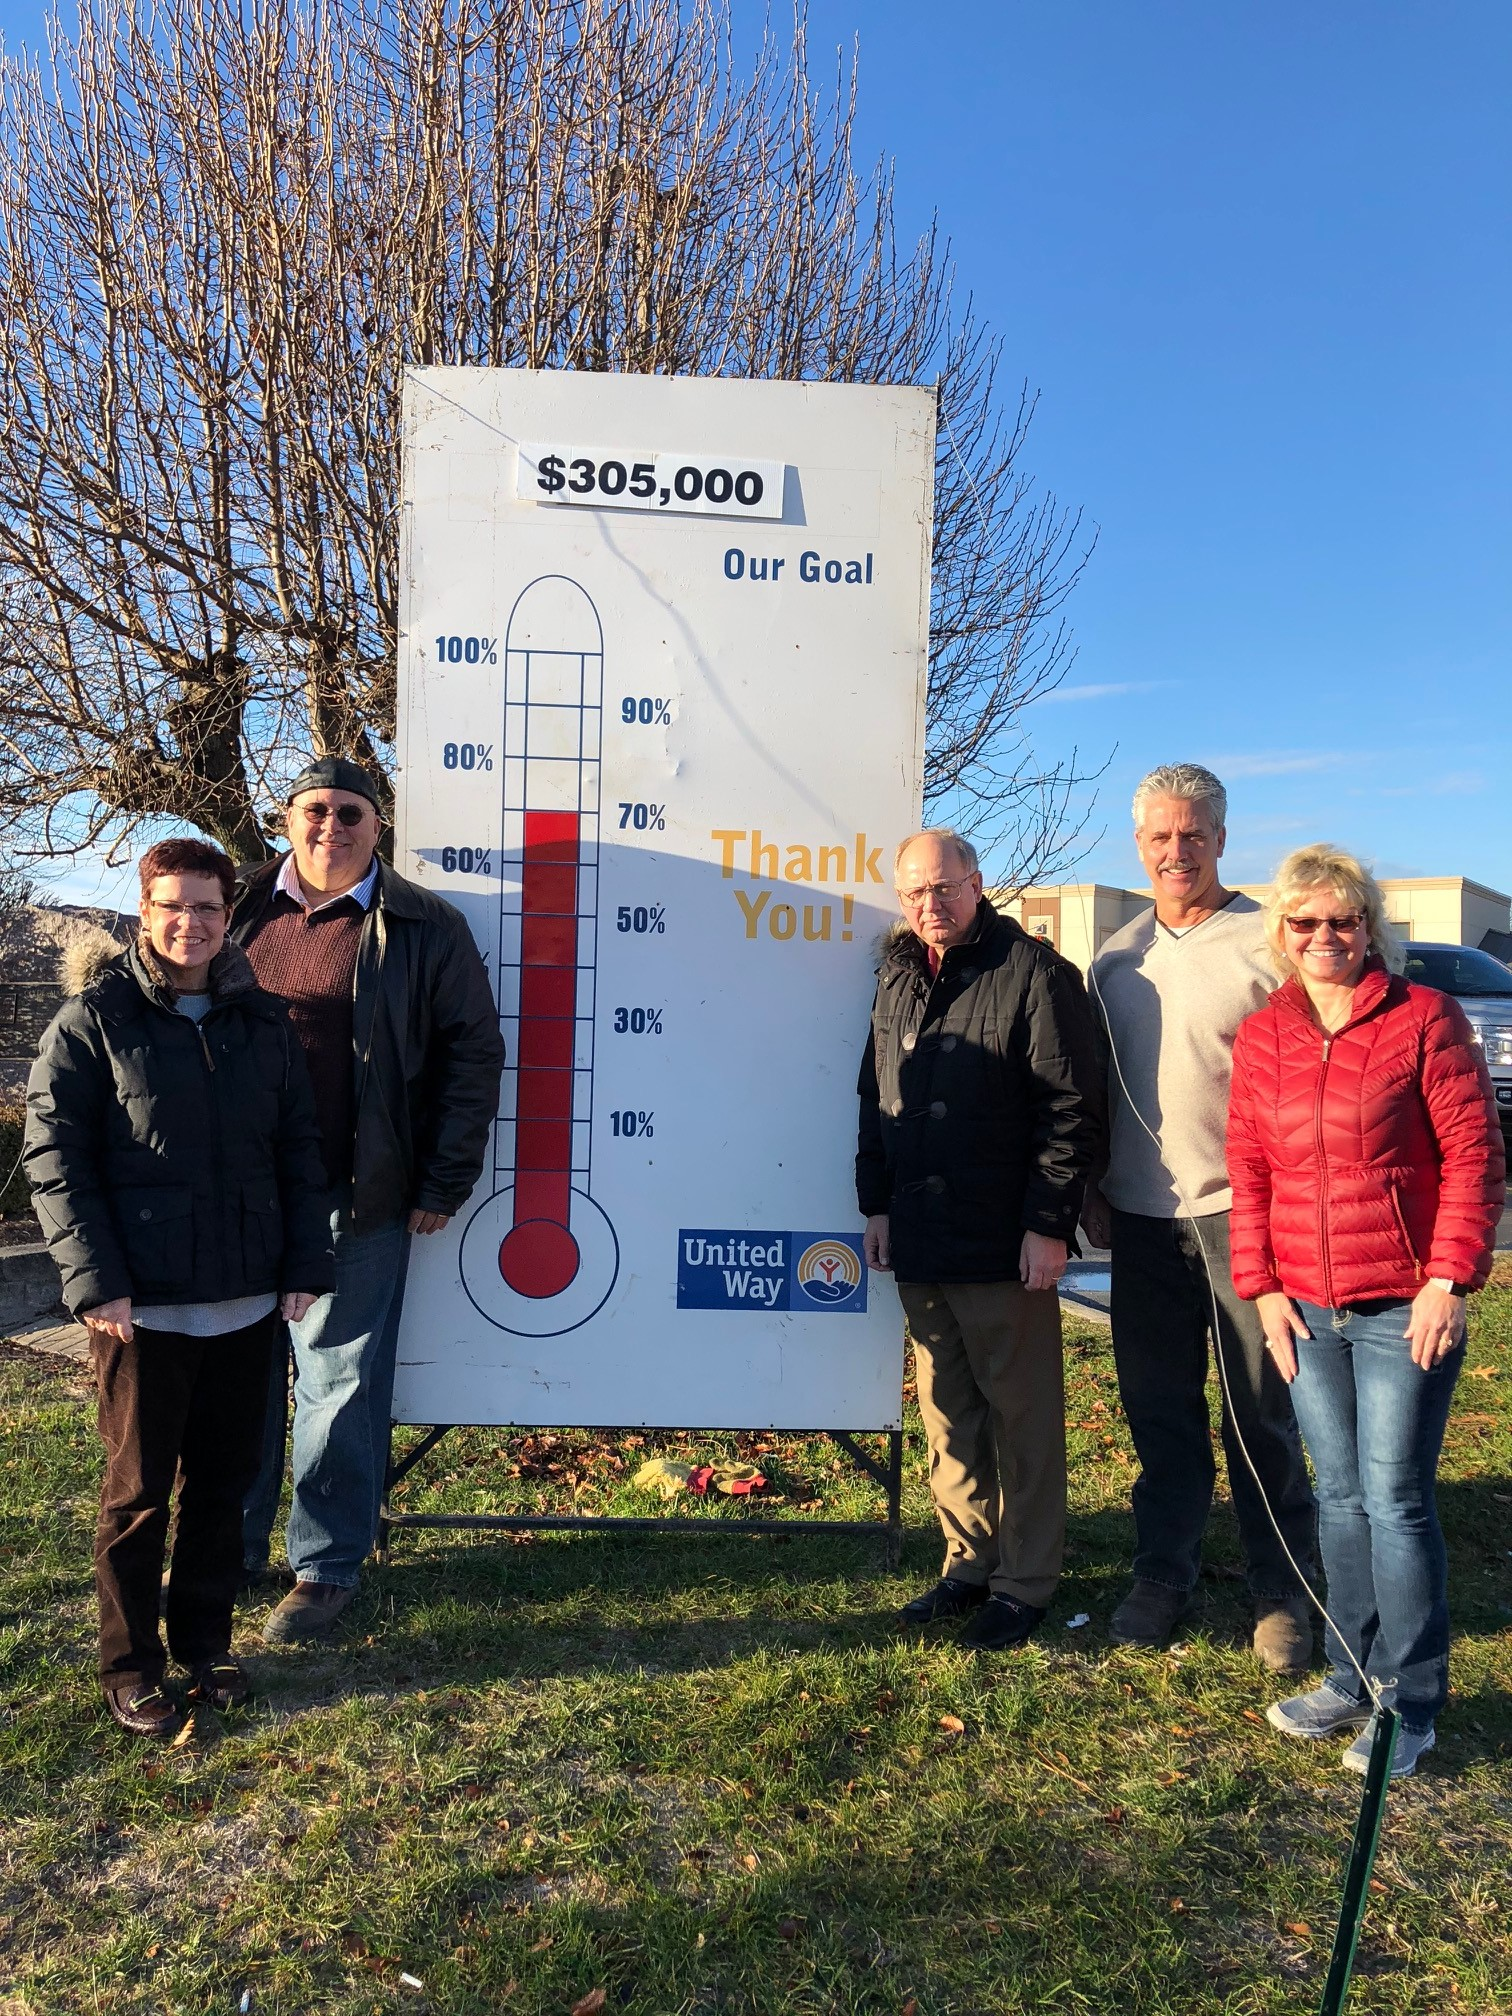 United Way of Effingham Now 76% Towards Their Goal